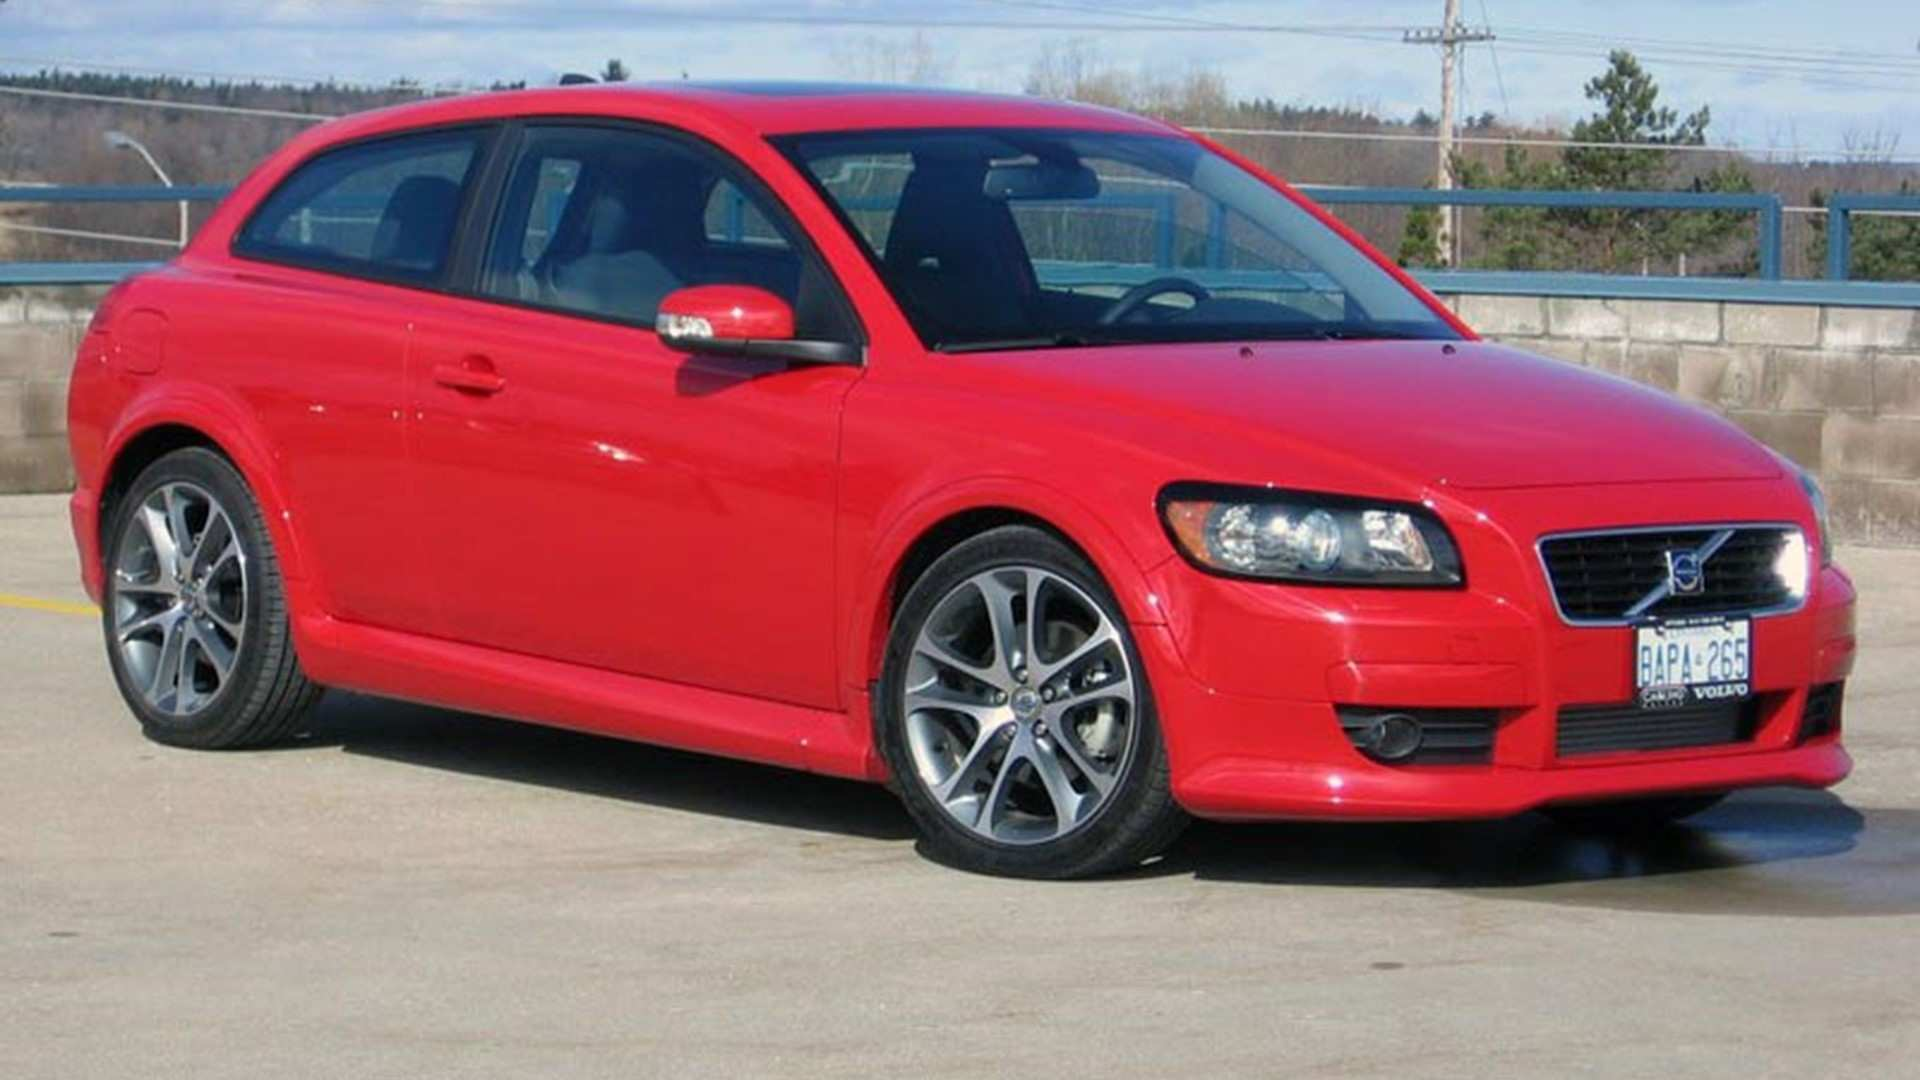 94 Concept of Volvo C30 2019 Performance Configurations with Volvo C30 2019 Performance